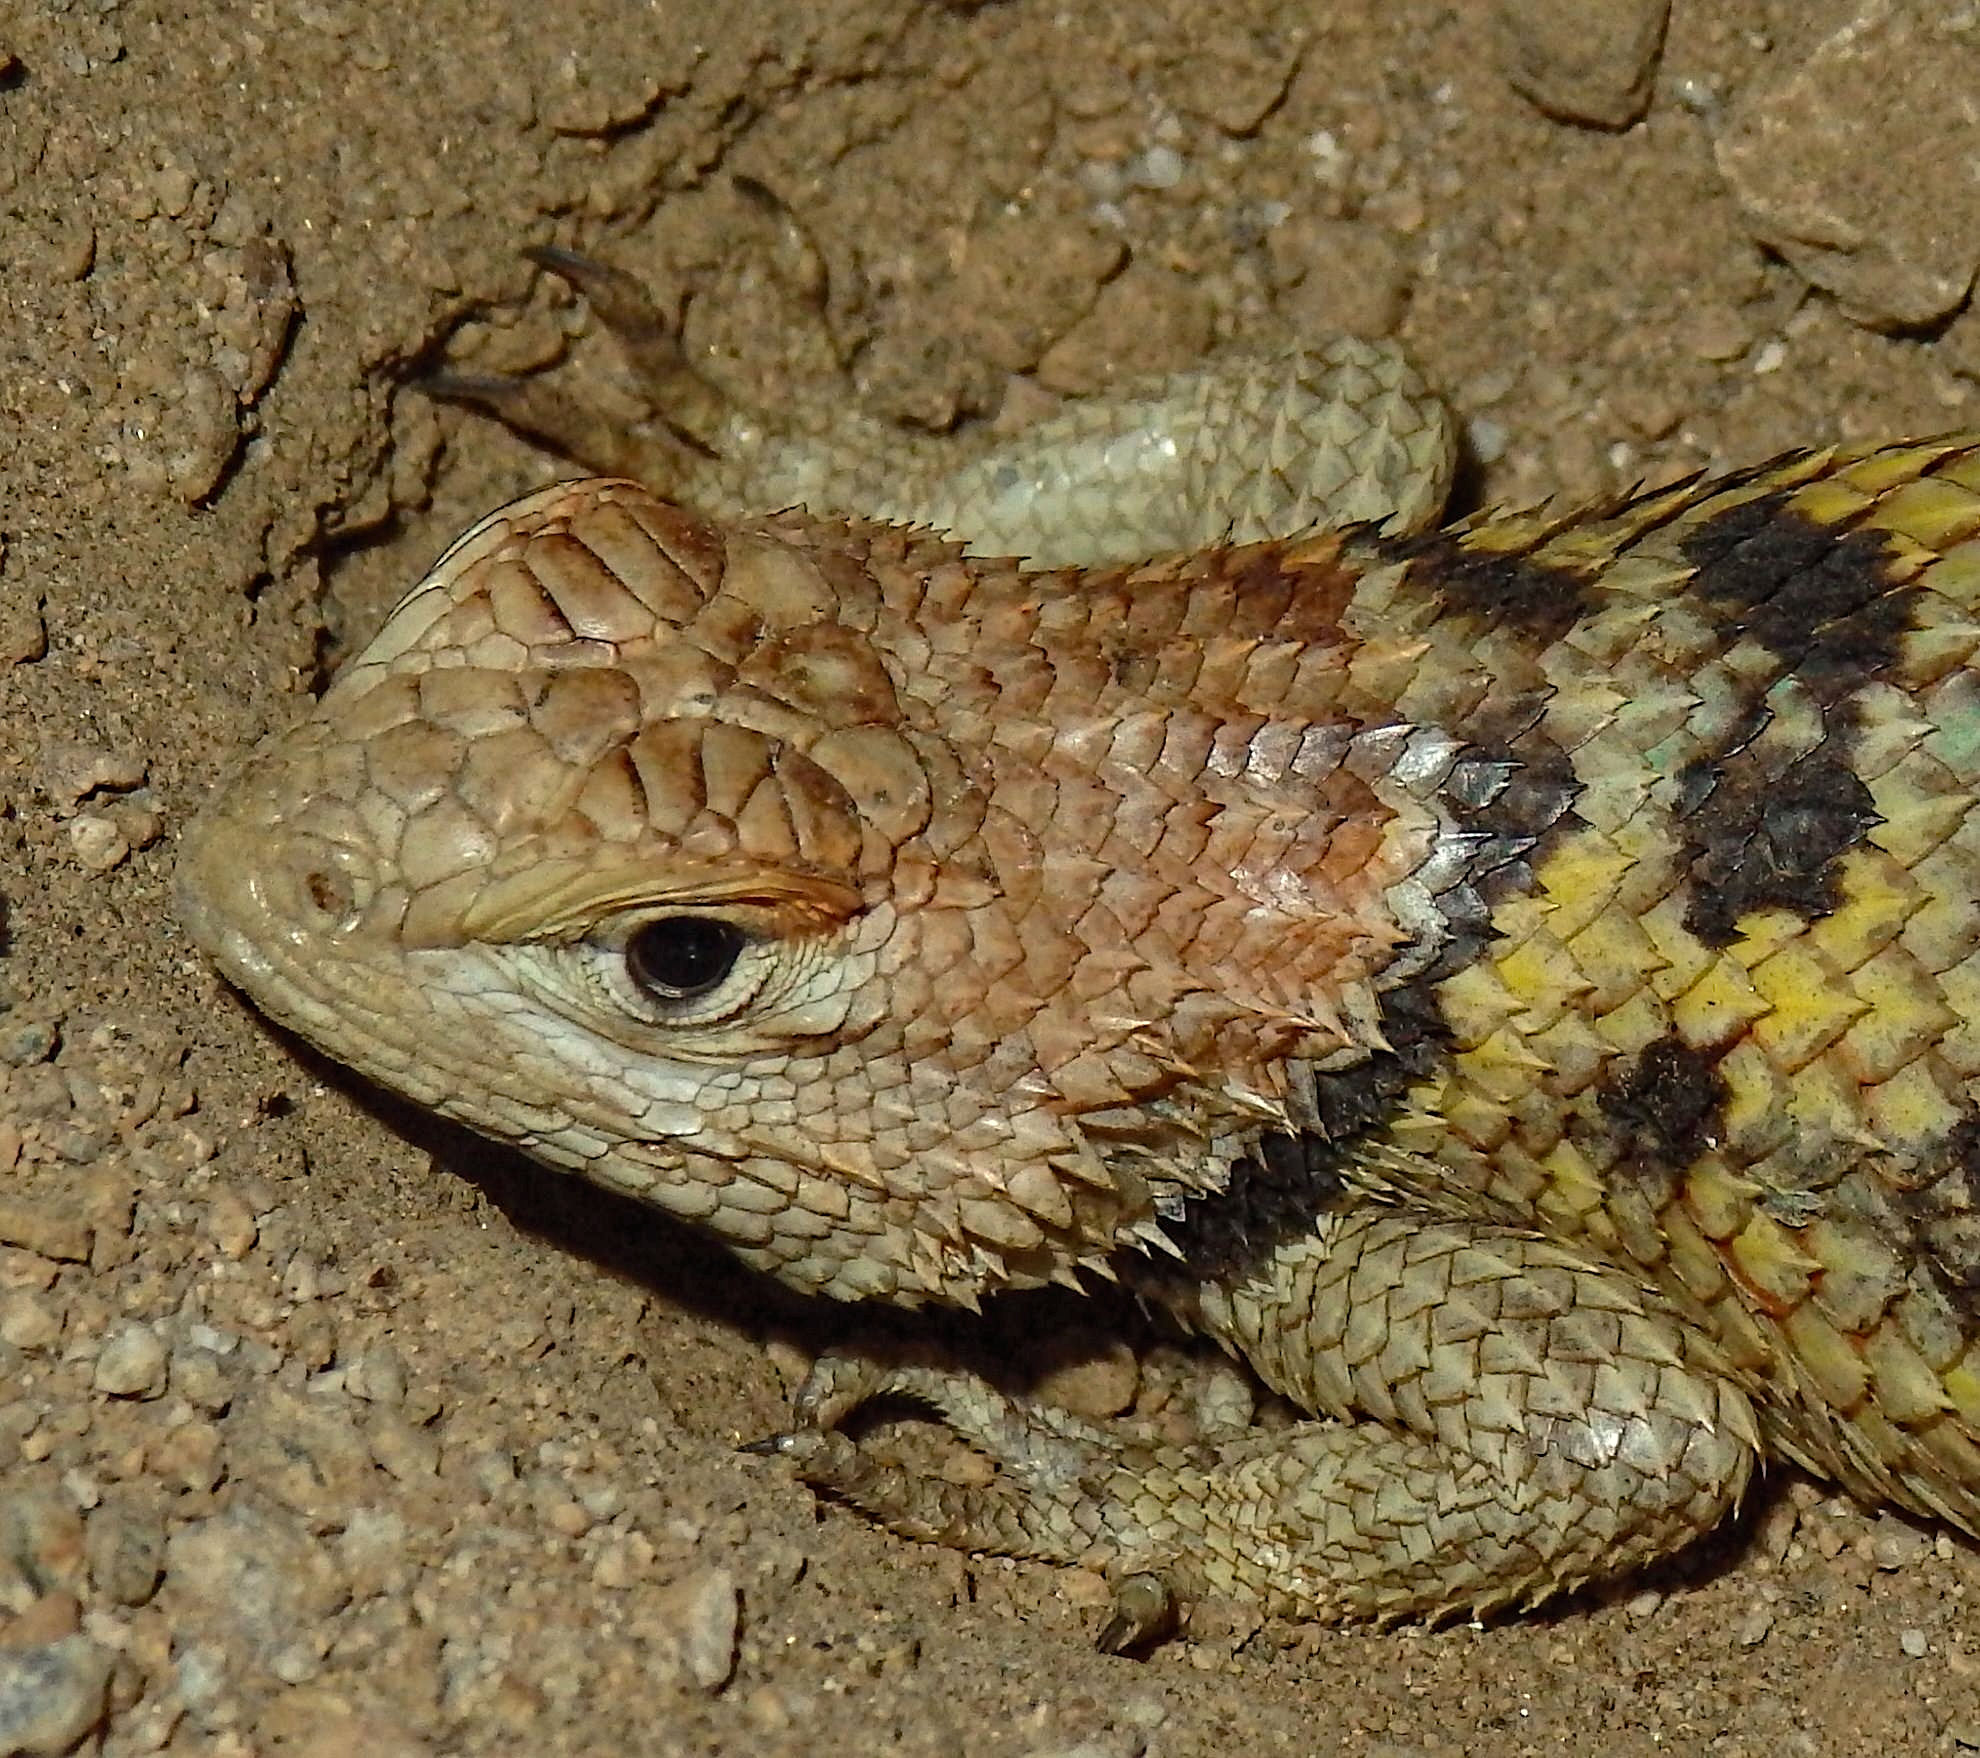 Listings of lizards found in the desert southwest with info